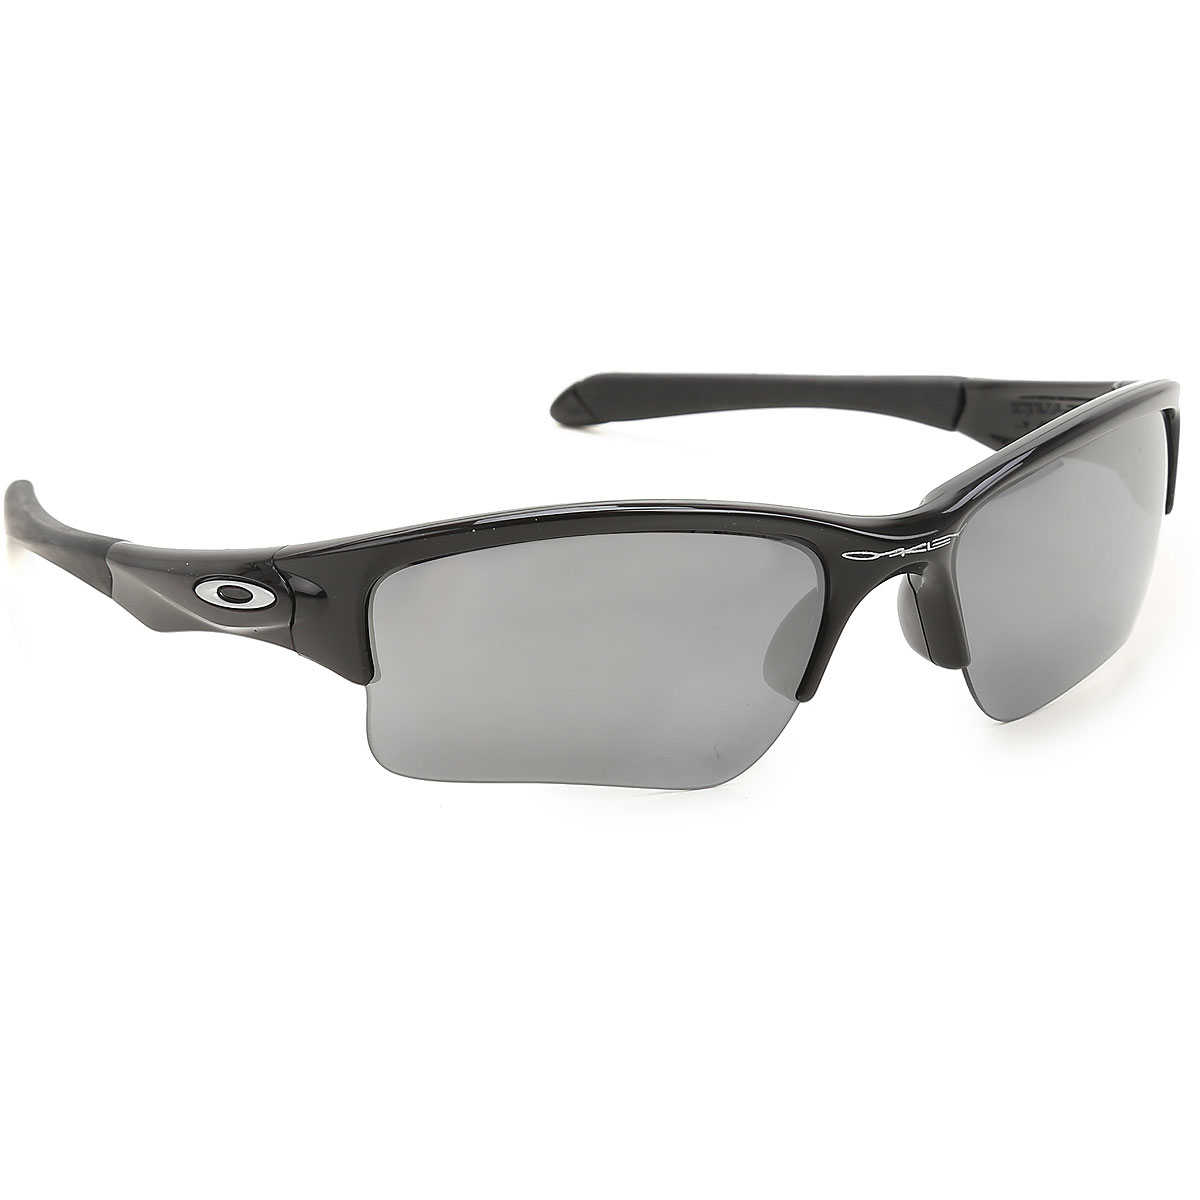 Oakley Kids Sunglasses for Boys in Outlet Black USA - GOOFASH